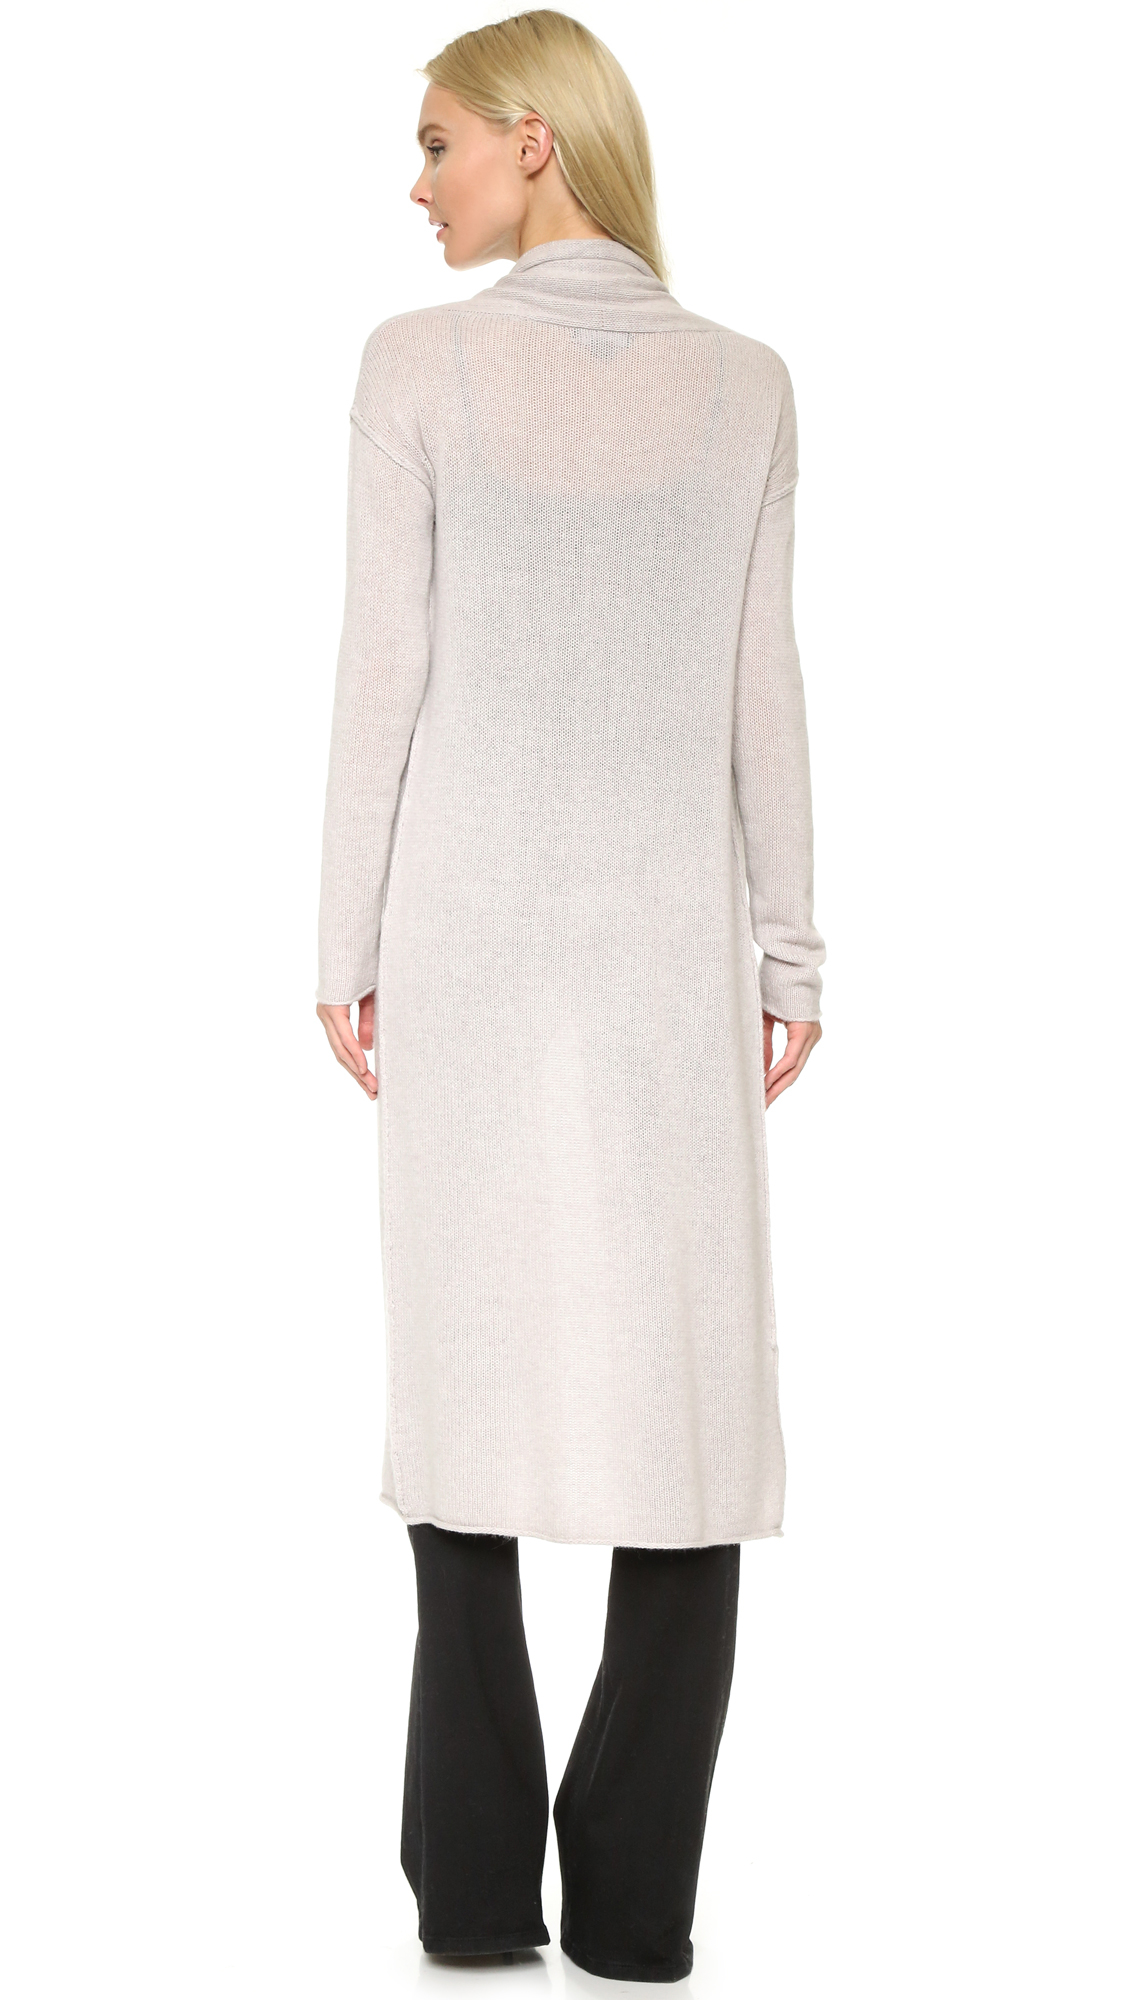 Theperfext Long Cashmere Sweater in Natural | Lyst